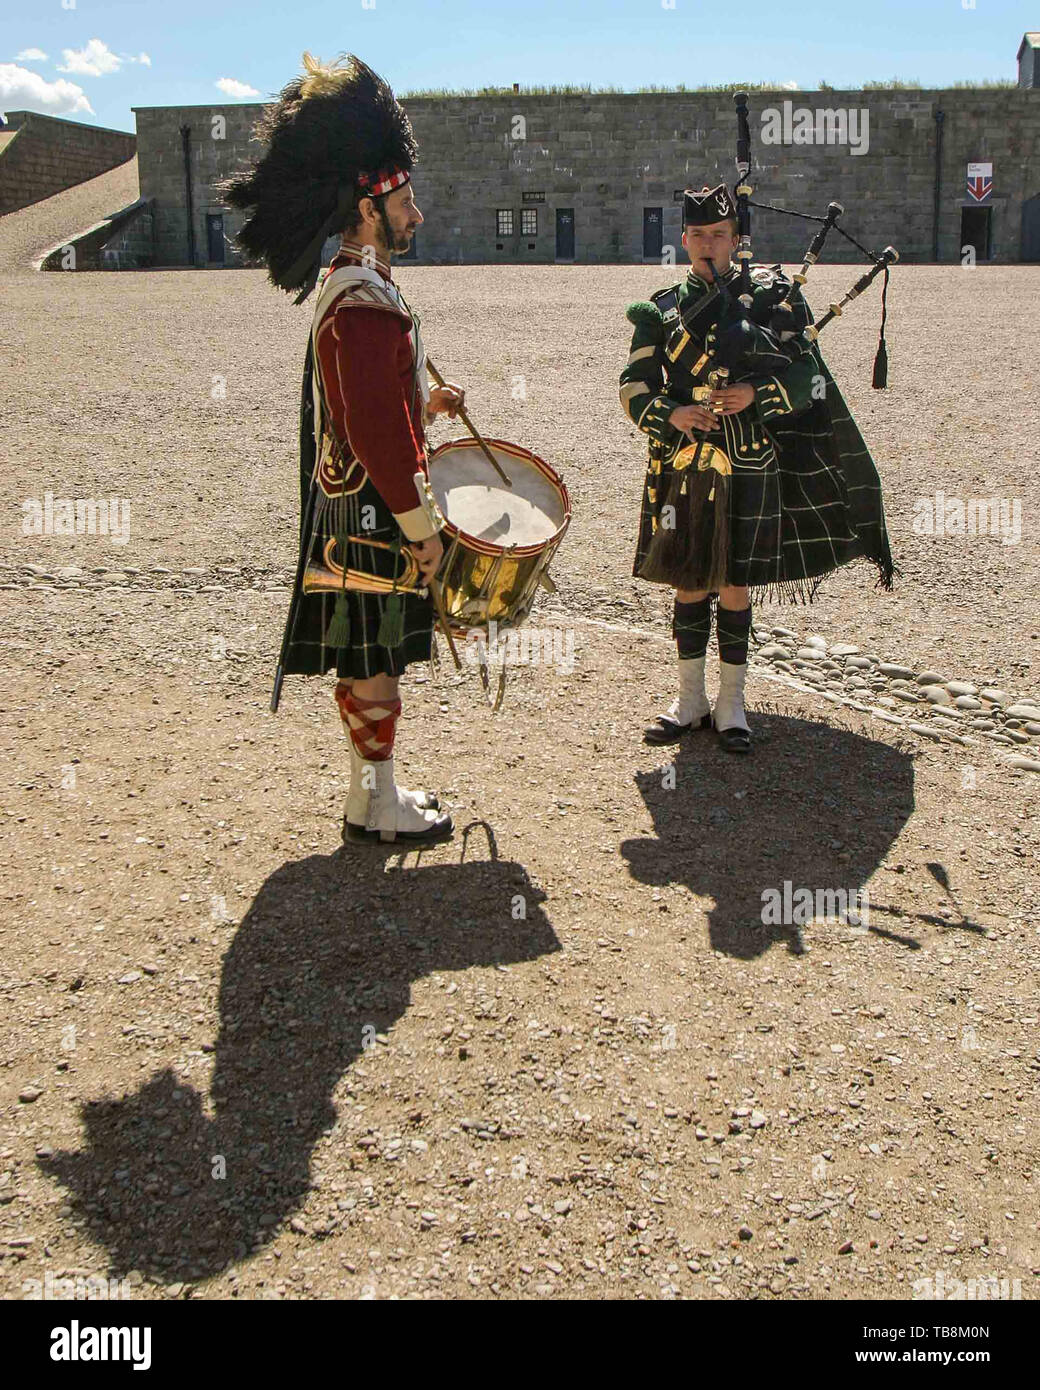 Halifax, Nova Scotia, Canada. 5th Sep, 2005. Drummer and piper re-enactors, dressed in the uniforms of the 78th Highlanders, perform for tourists on Citadel Hill (Fort George), a National Historic Site in Halifax, Nova Scotia. A living history museum, the fort is among the most visited sites in Atlantic Canada. Credit: Arnold Drapkin/ZUMA Wire/Alamy Live News - Stock Image